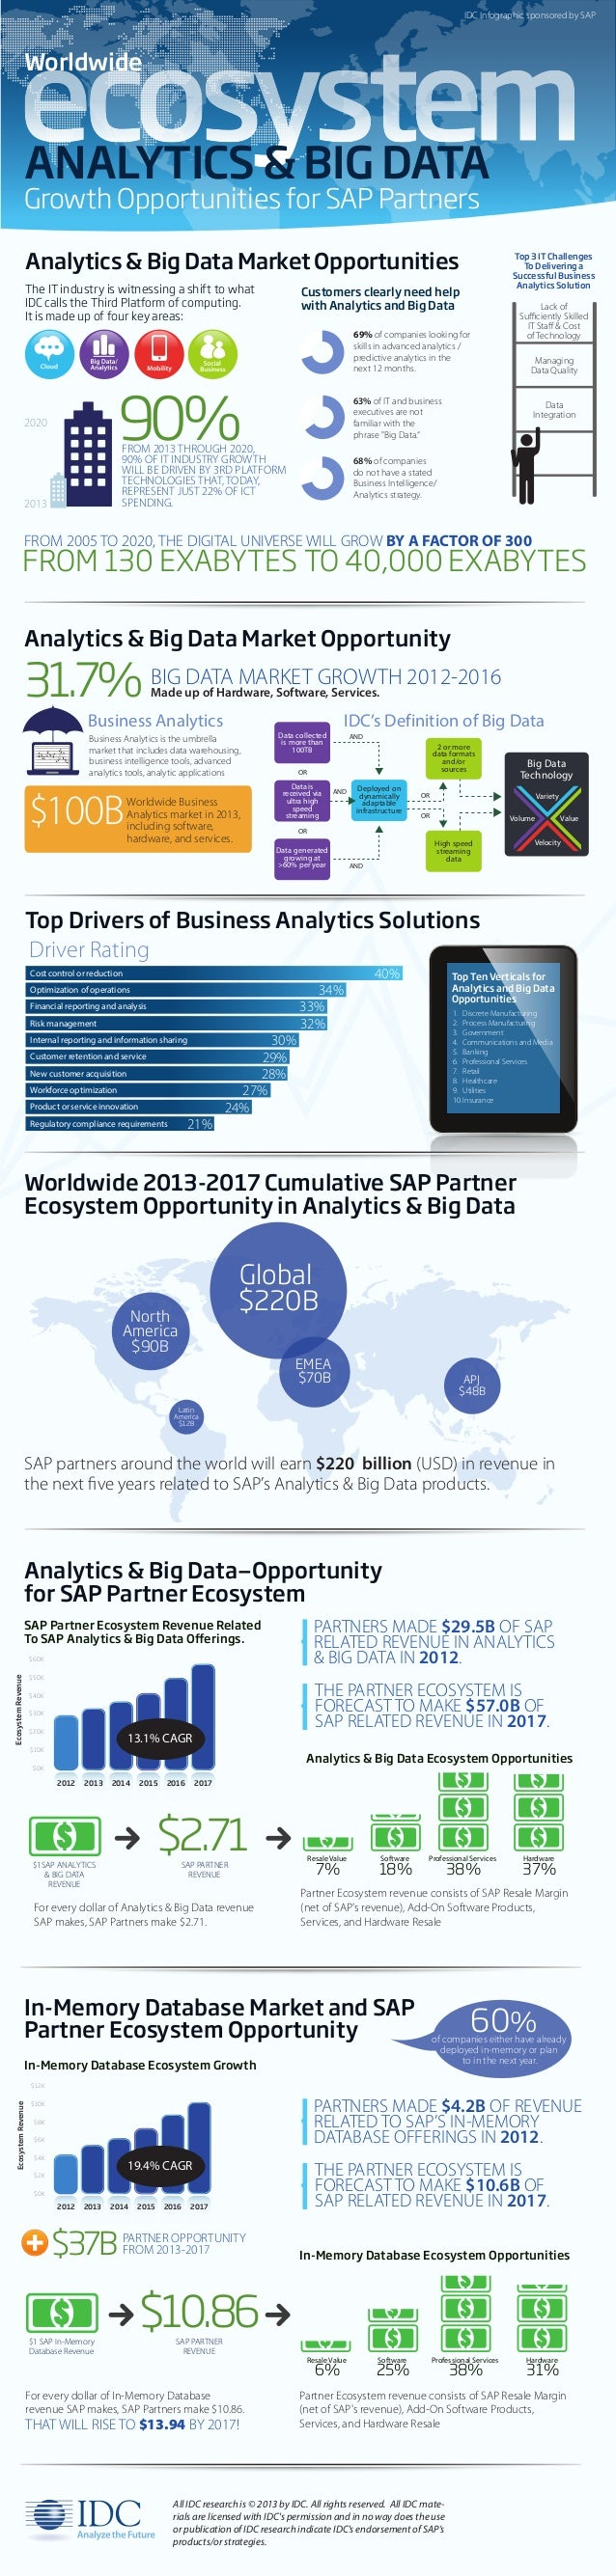 Analytics & Big Data: Growth Opportunities for SAP Partners